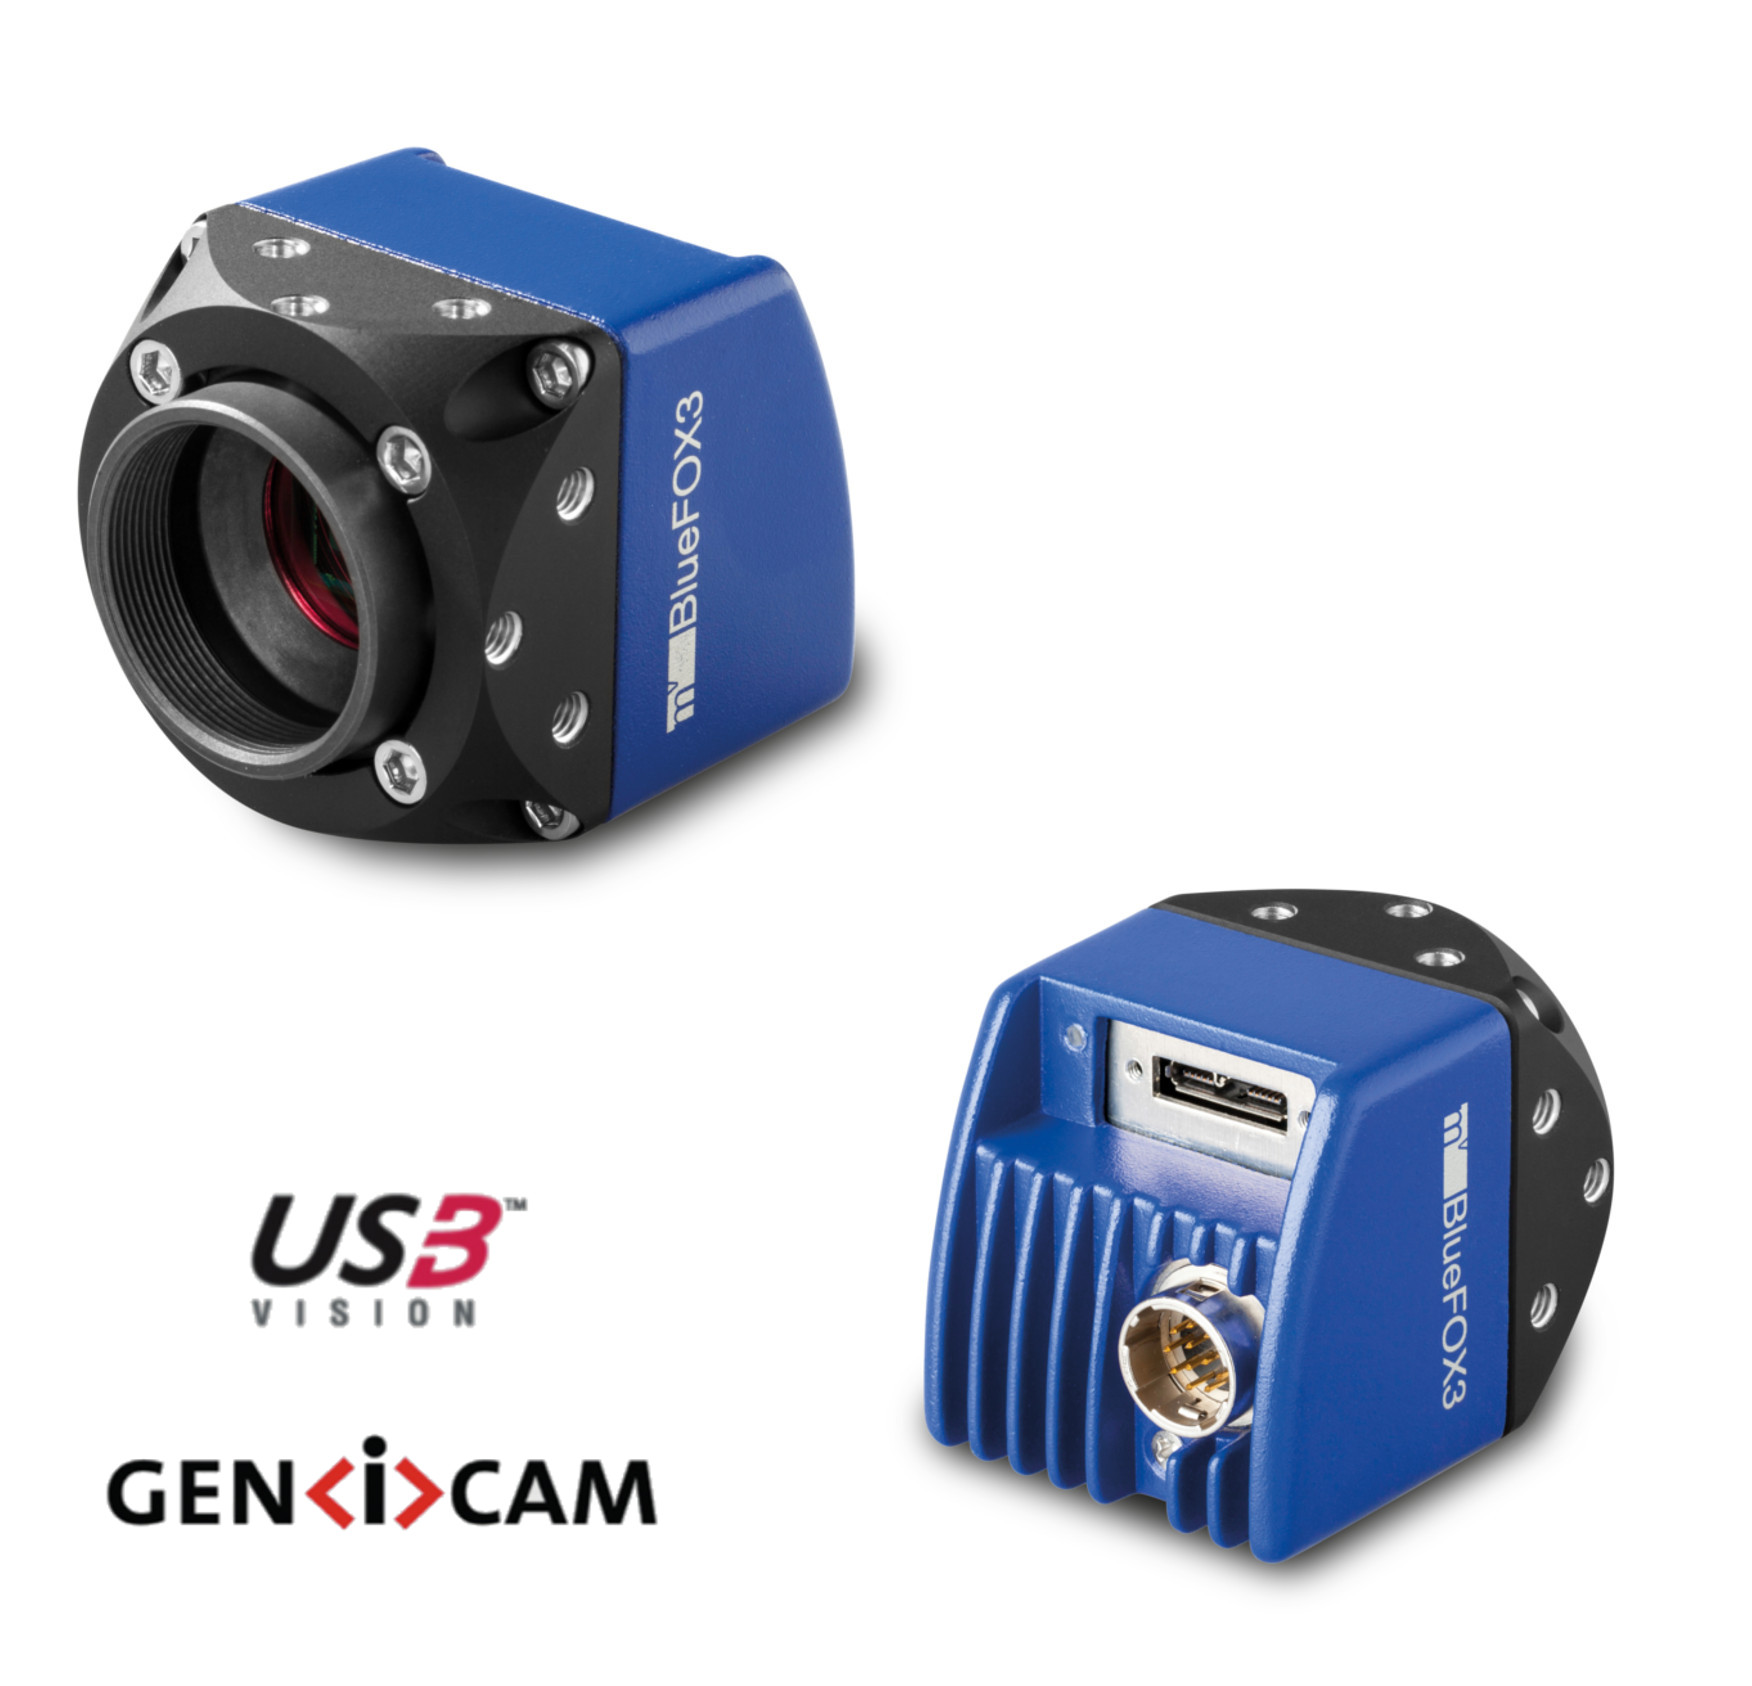 USB3 vision camera with Sony Pregius CMOS sensors